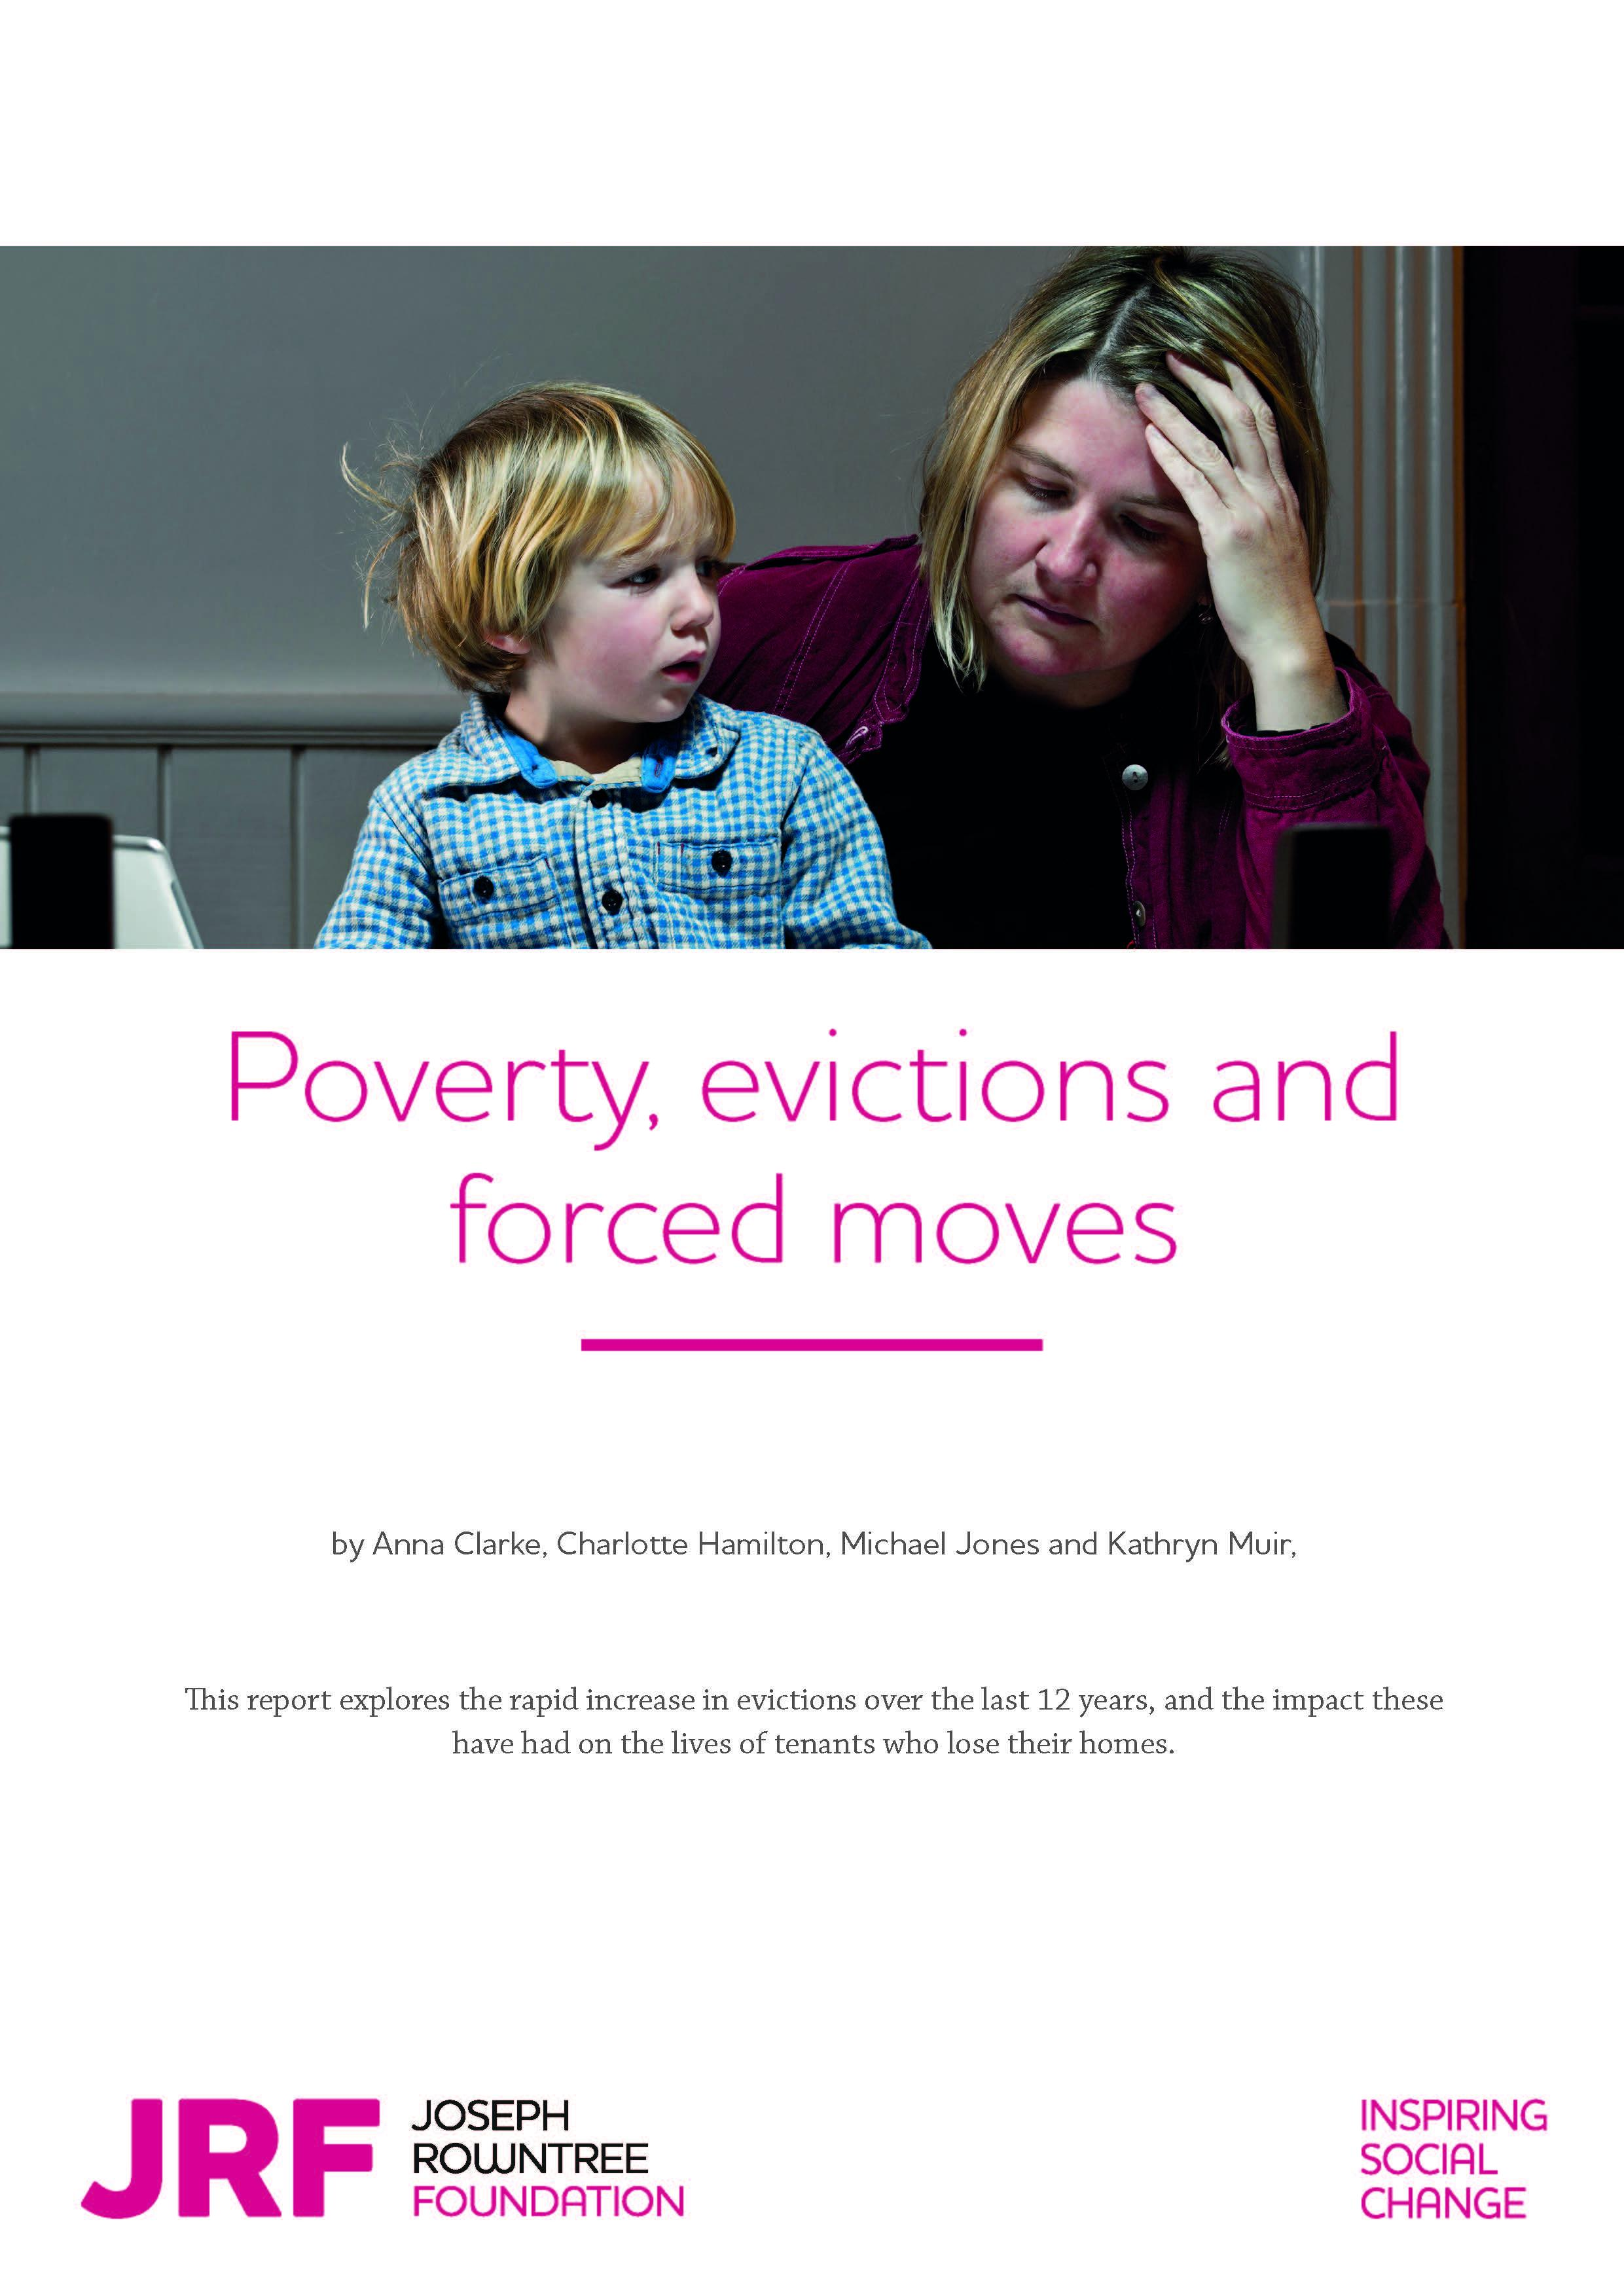 Evictions reach a record high -  new report for JRF published